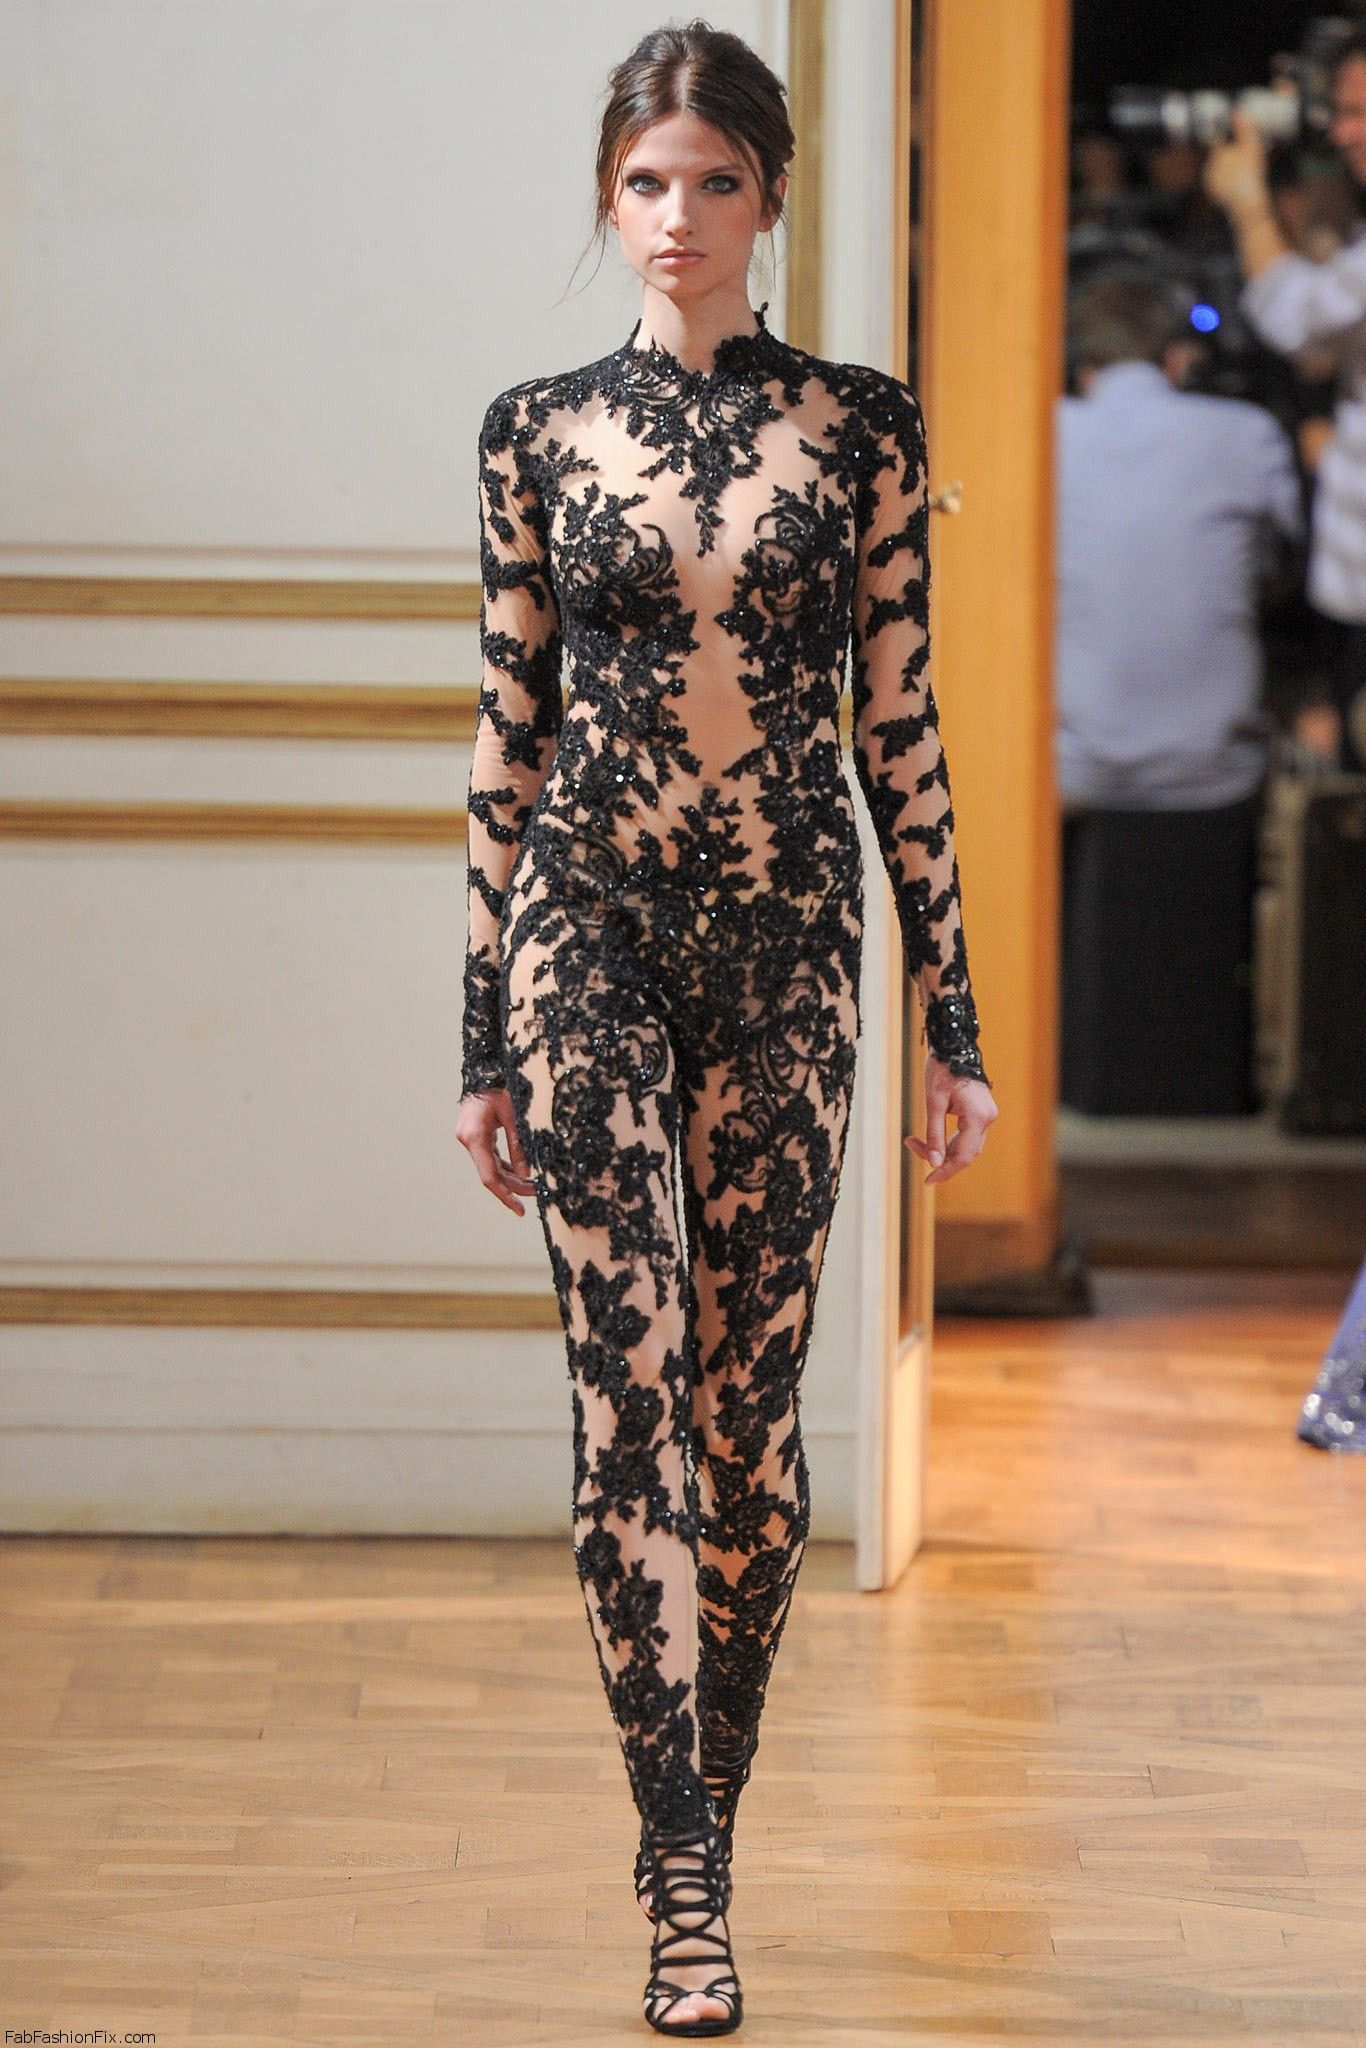 Zuhair Murad Haute Couture Fall Winter 2013 14 Collection